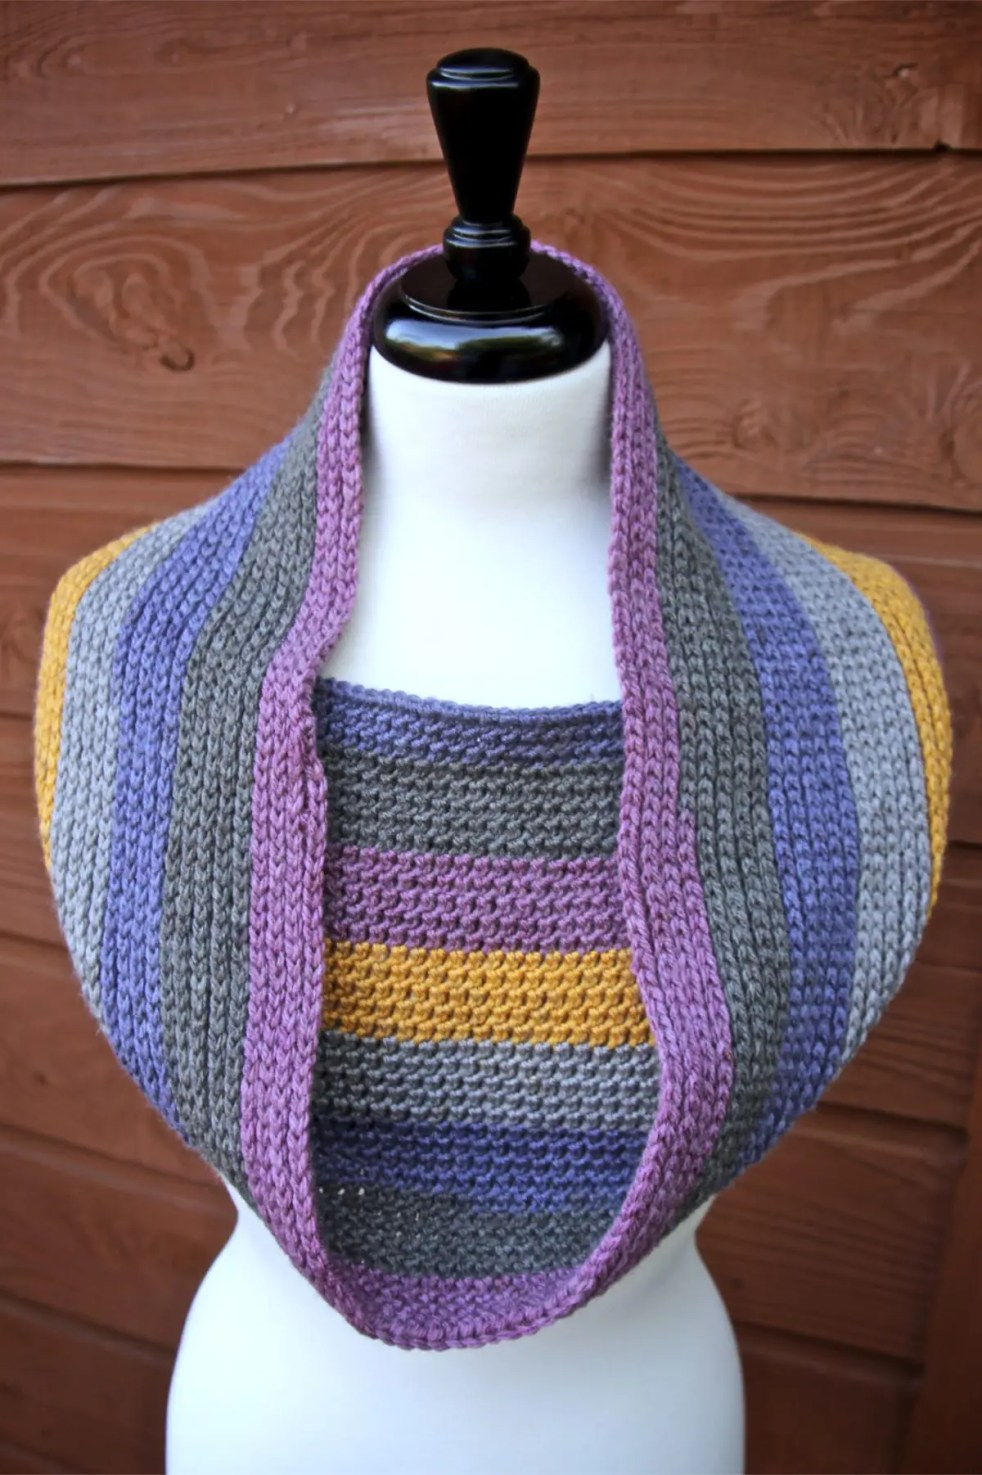 Knitty Pretty Reversible Crochet Cowl